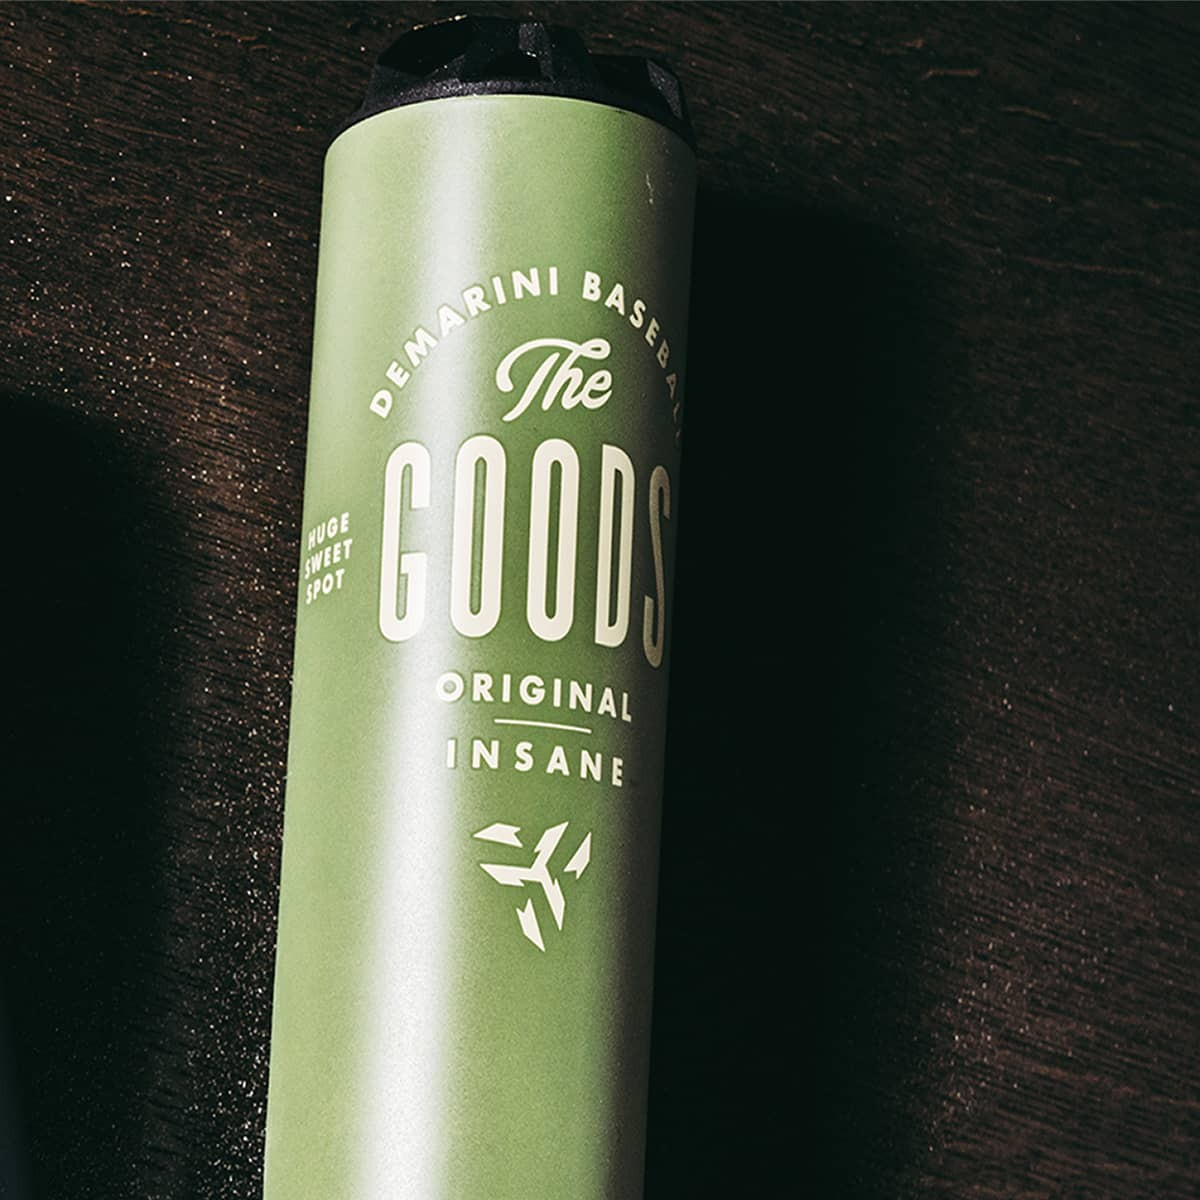 New Tan Barrel Design 2021 The Goods